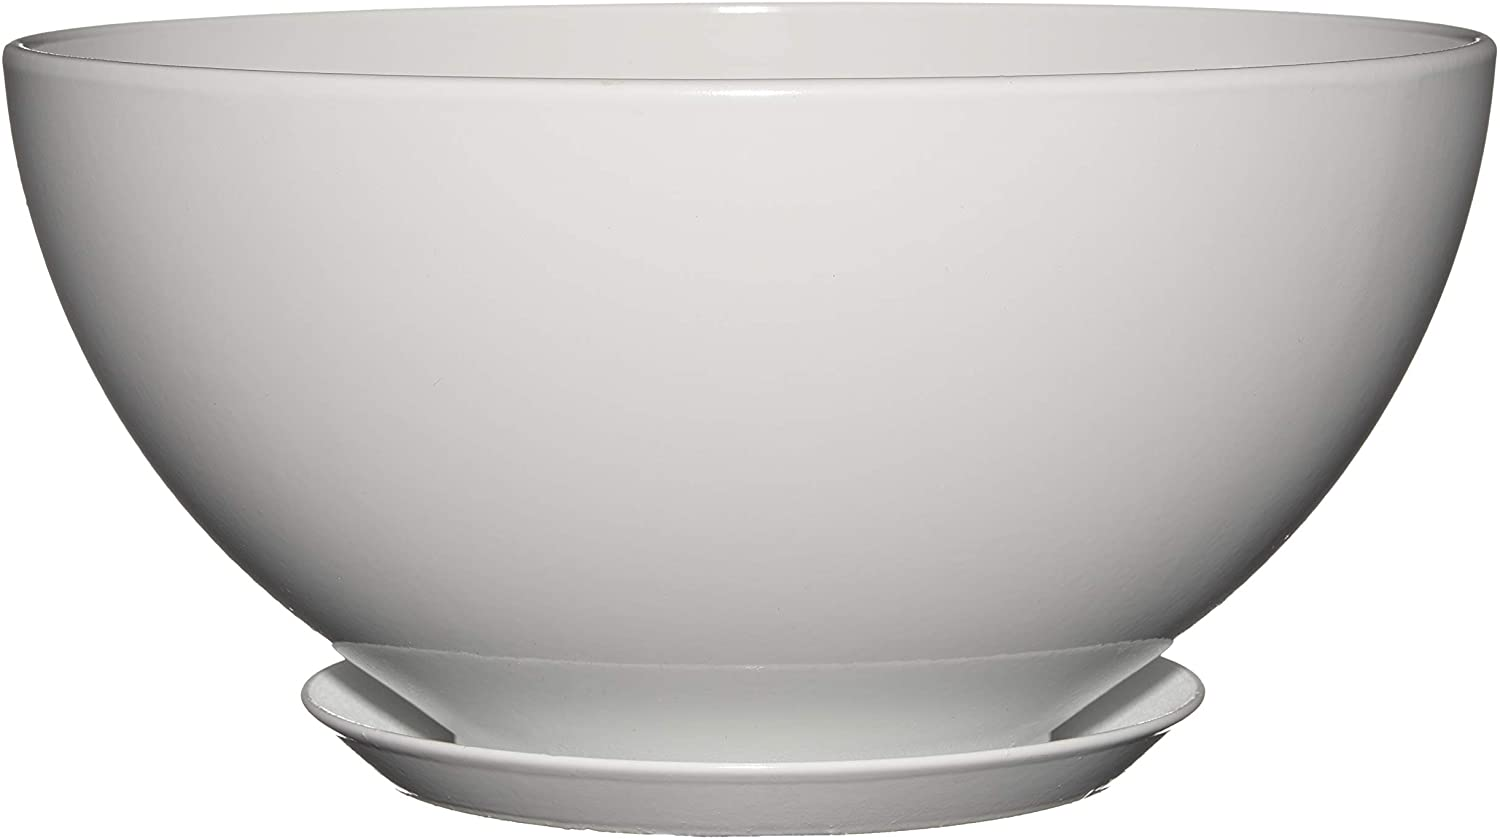 "Classic Home and Garden 9010D-405S 10"" Rosie Bowl Planter, Stark White"